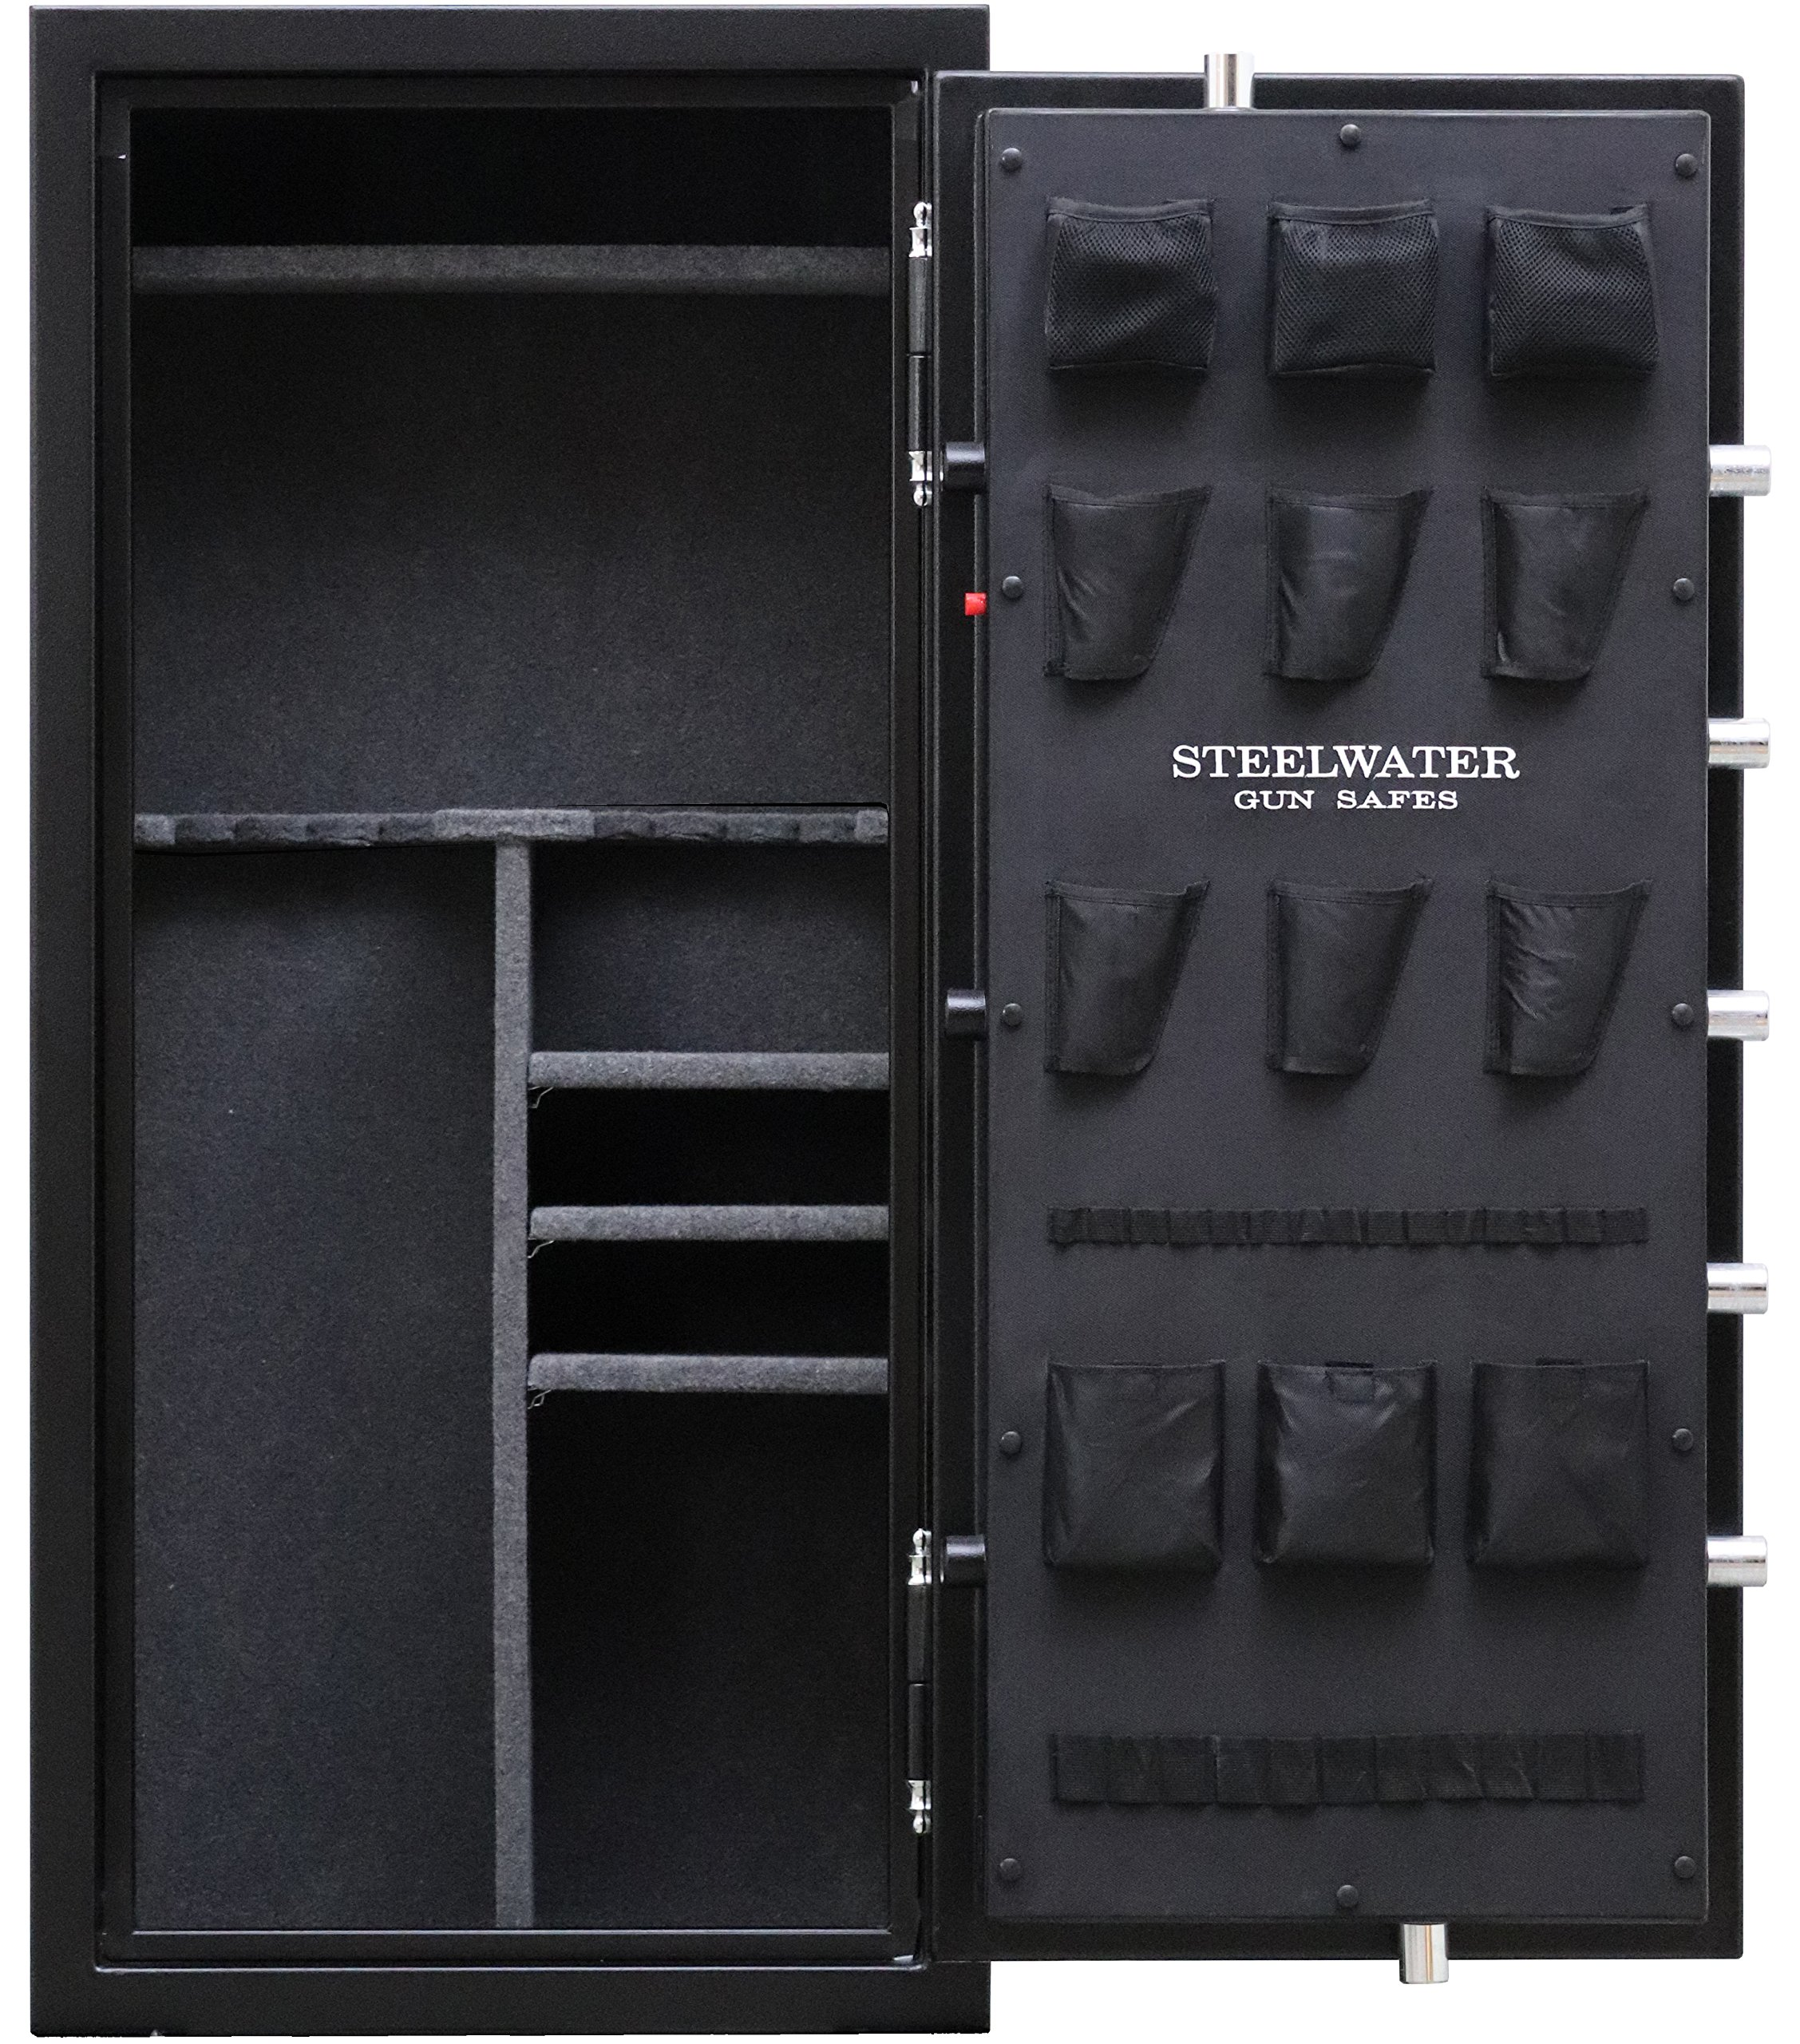 New and Improved Steelwater Heavy Duty 20 Long Gun Fire Protection for 60 Minutes AMSW592818-blk by Steelwater Gun Safes (Image #3)